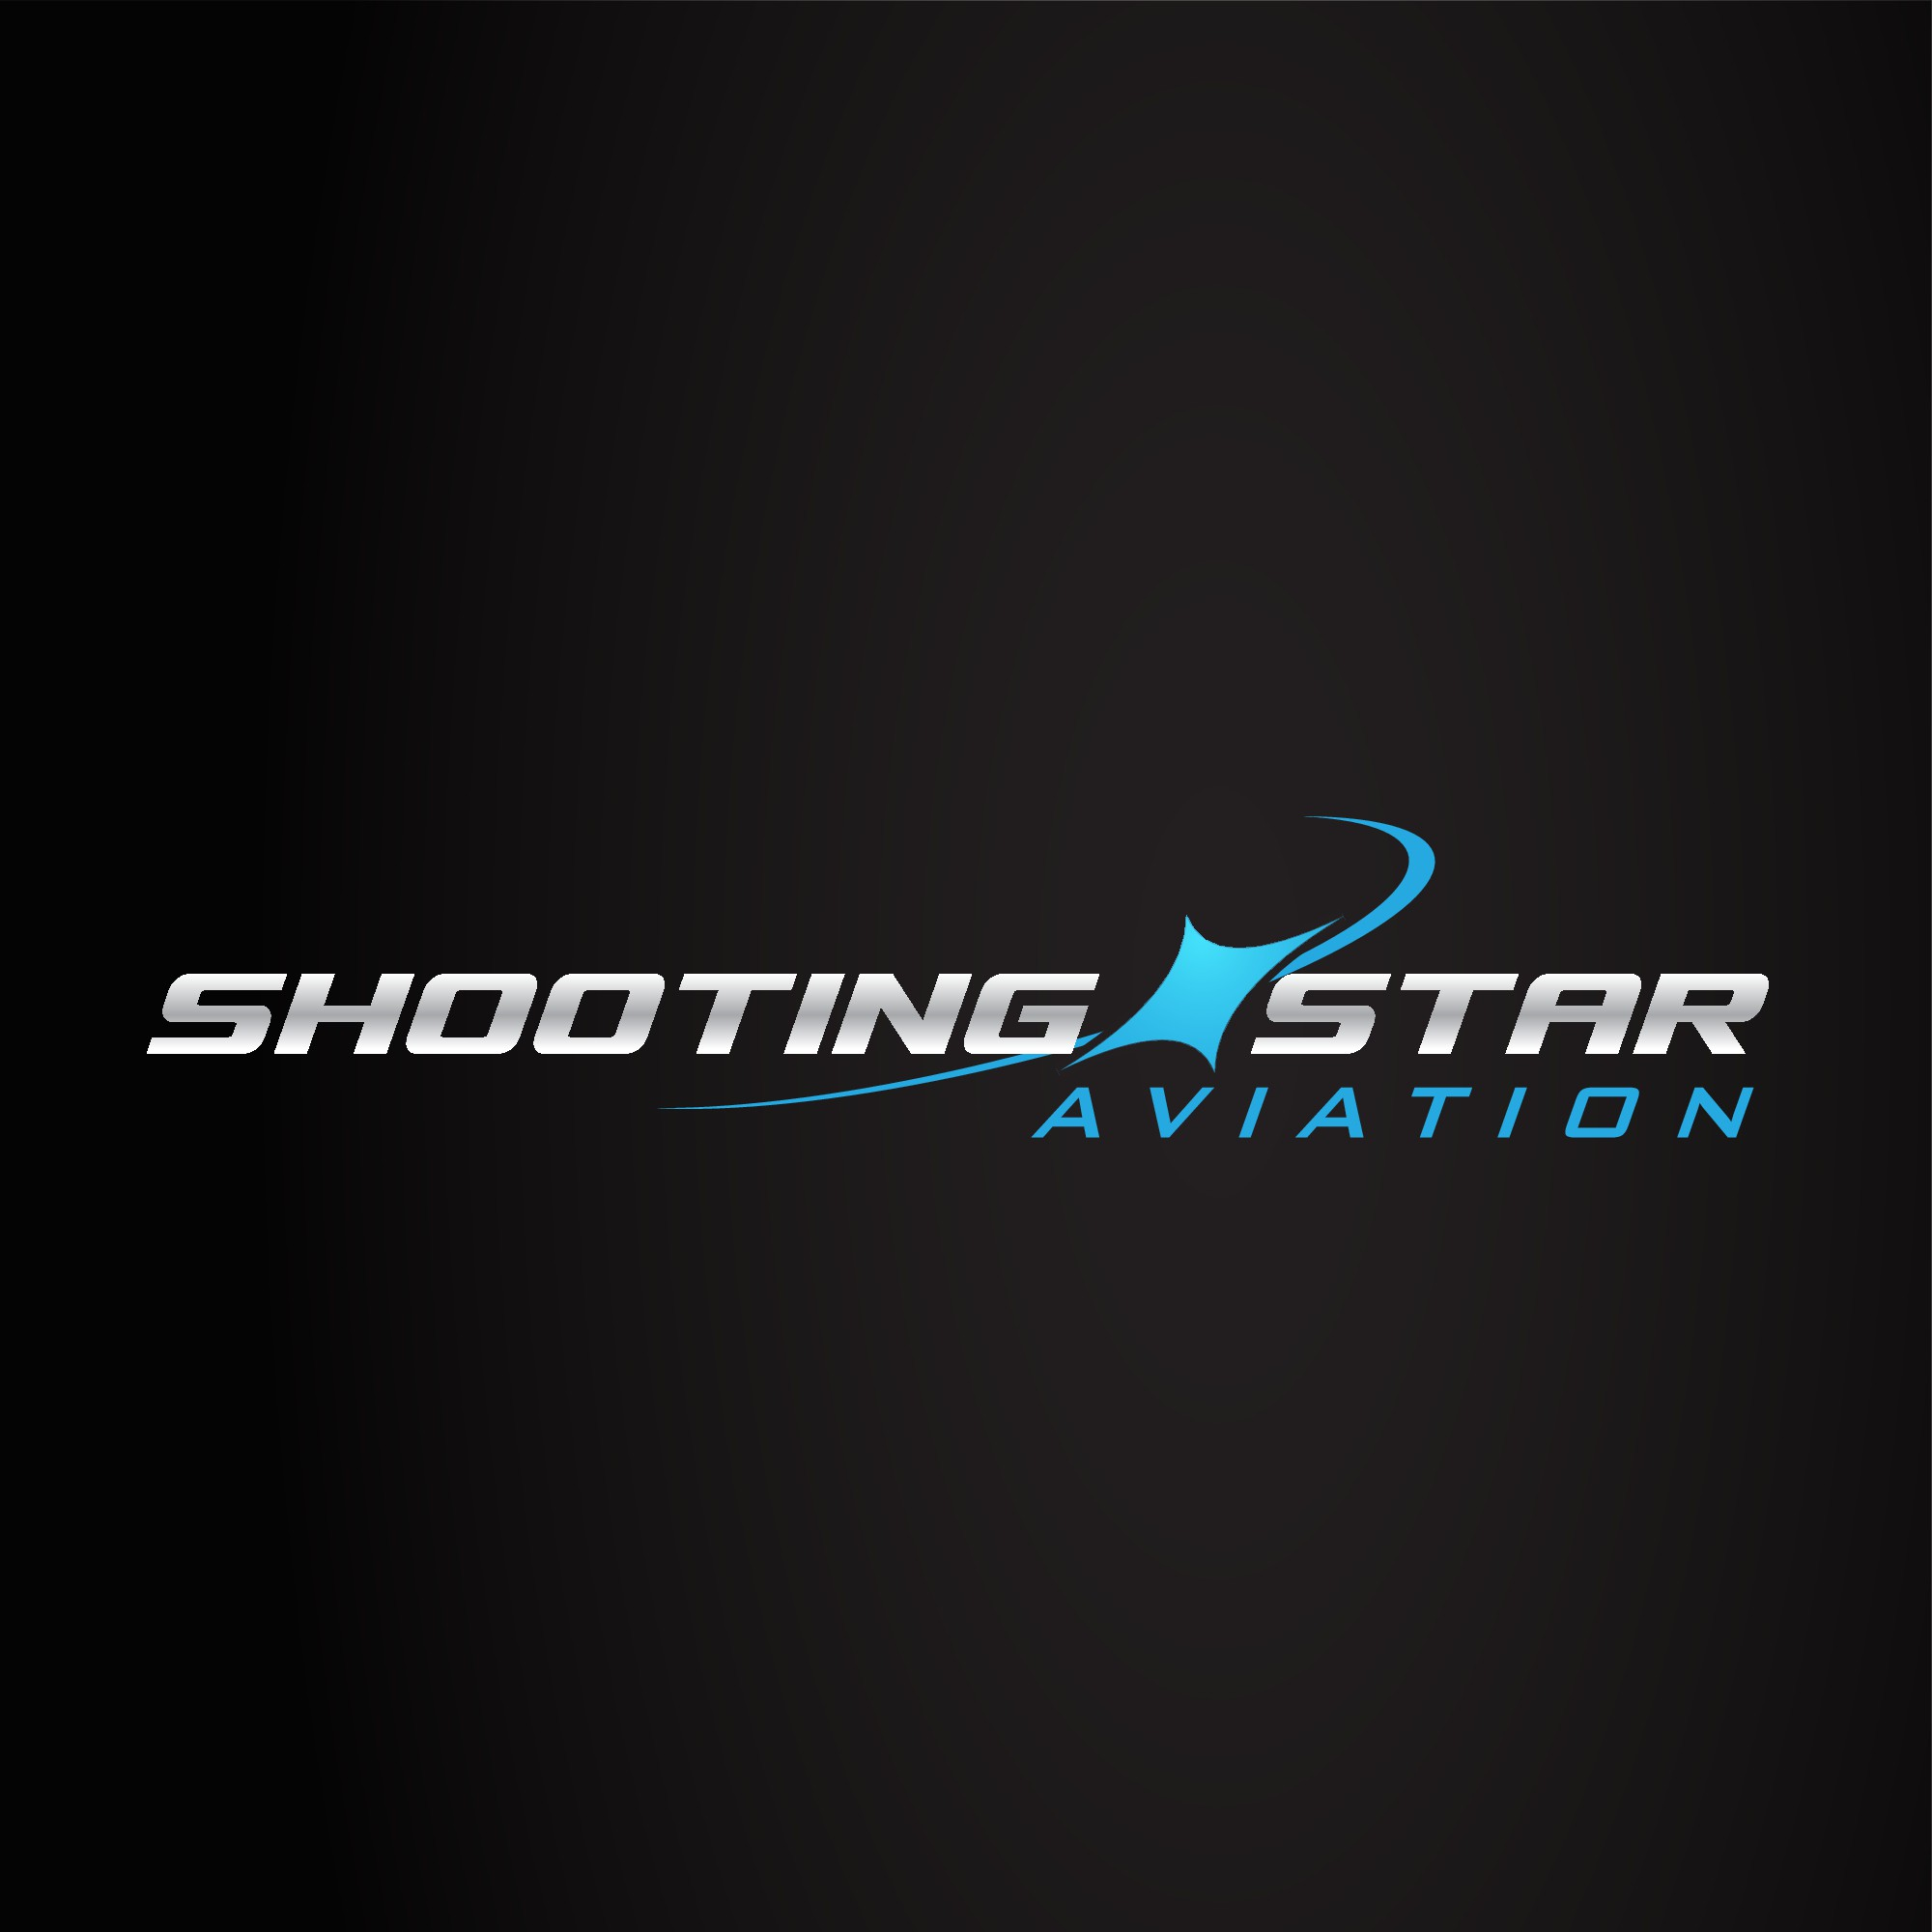 Drone company needs powerful logo.  Shooting Star Aviation